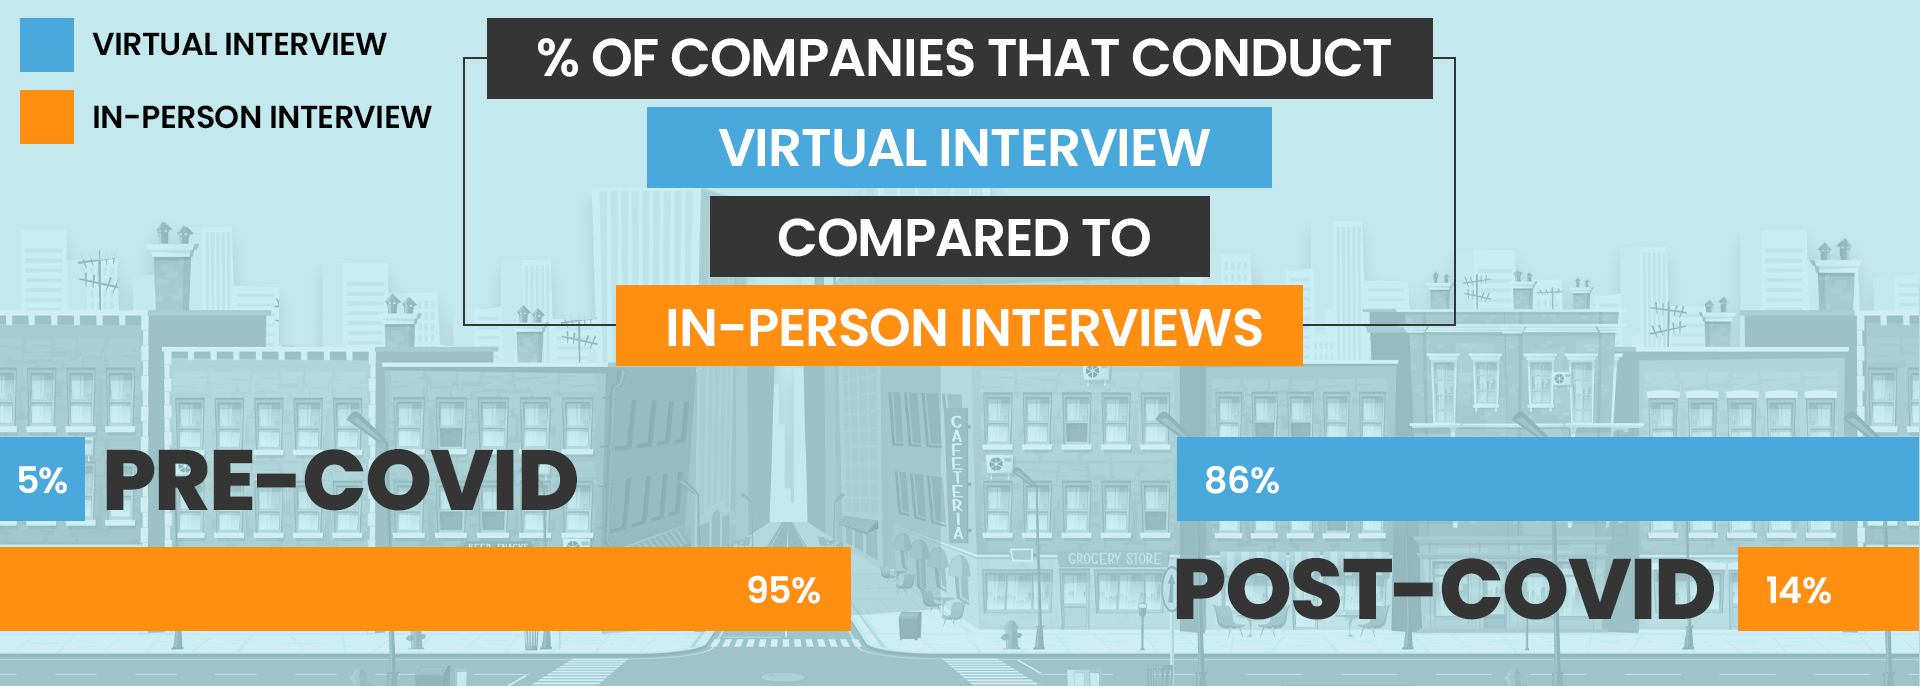 Percent of companies that conduct virtual interview compared to in person interviews